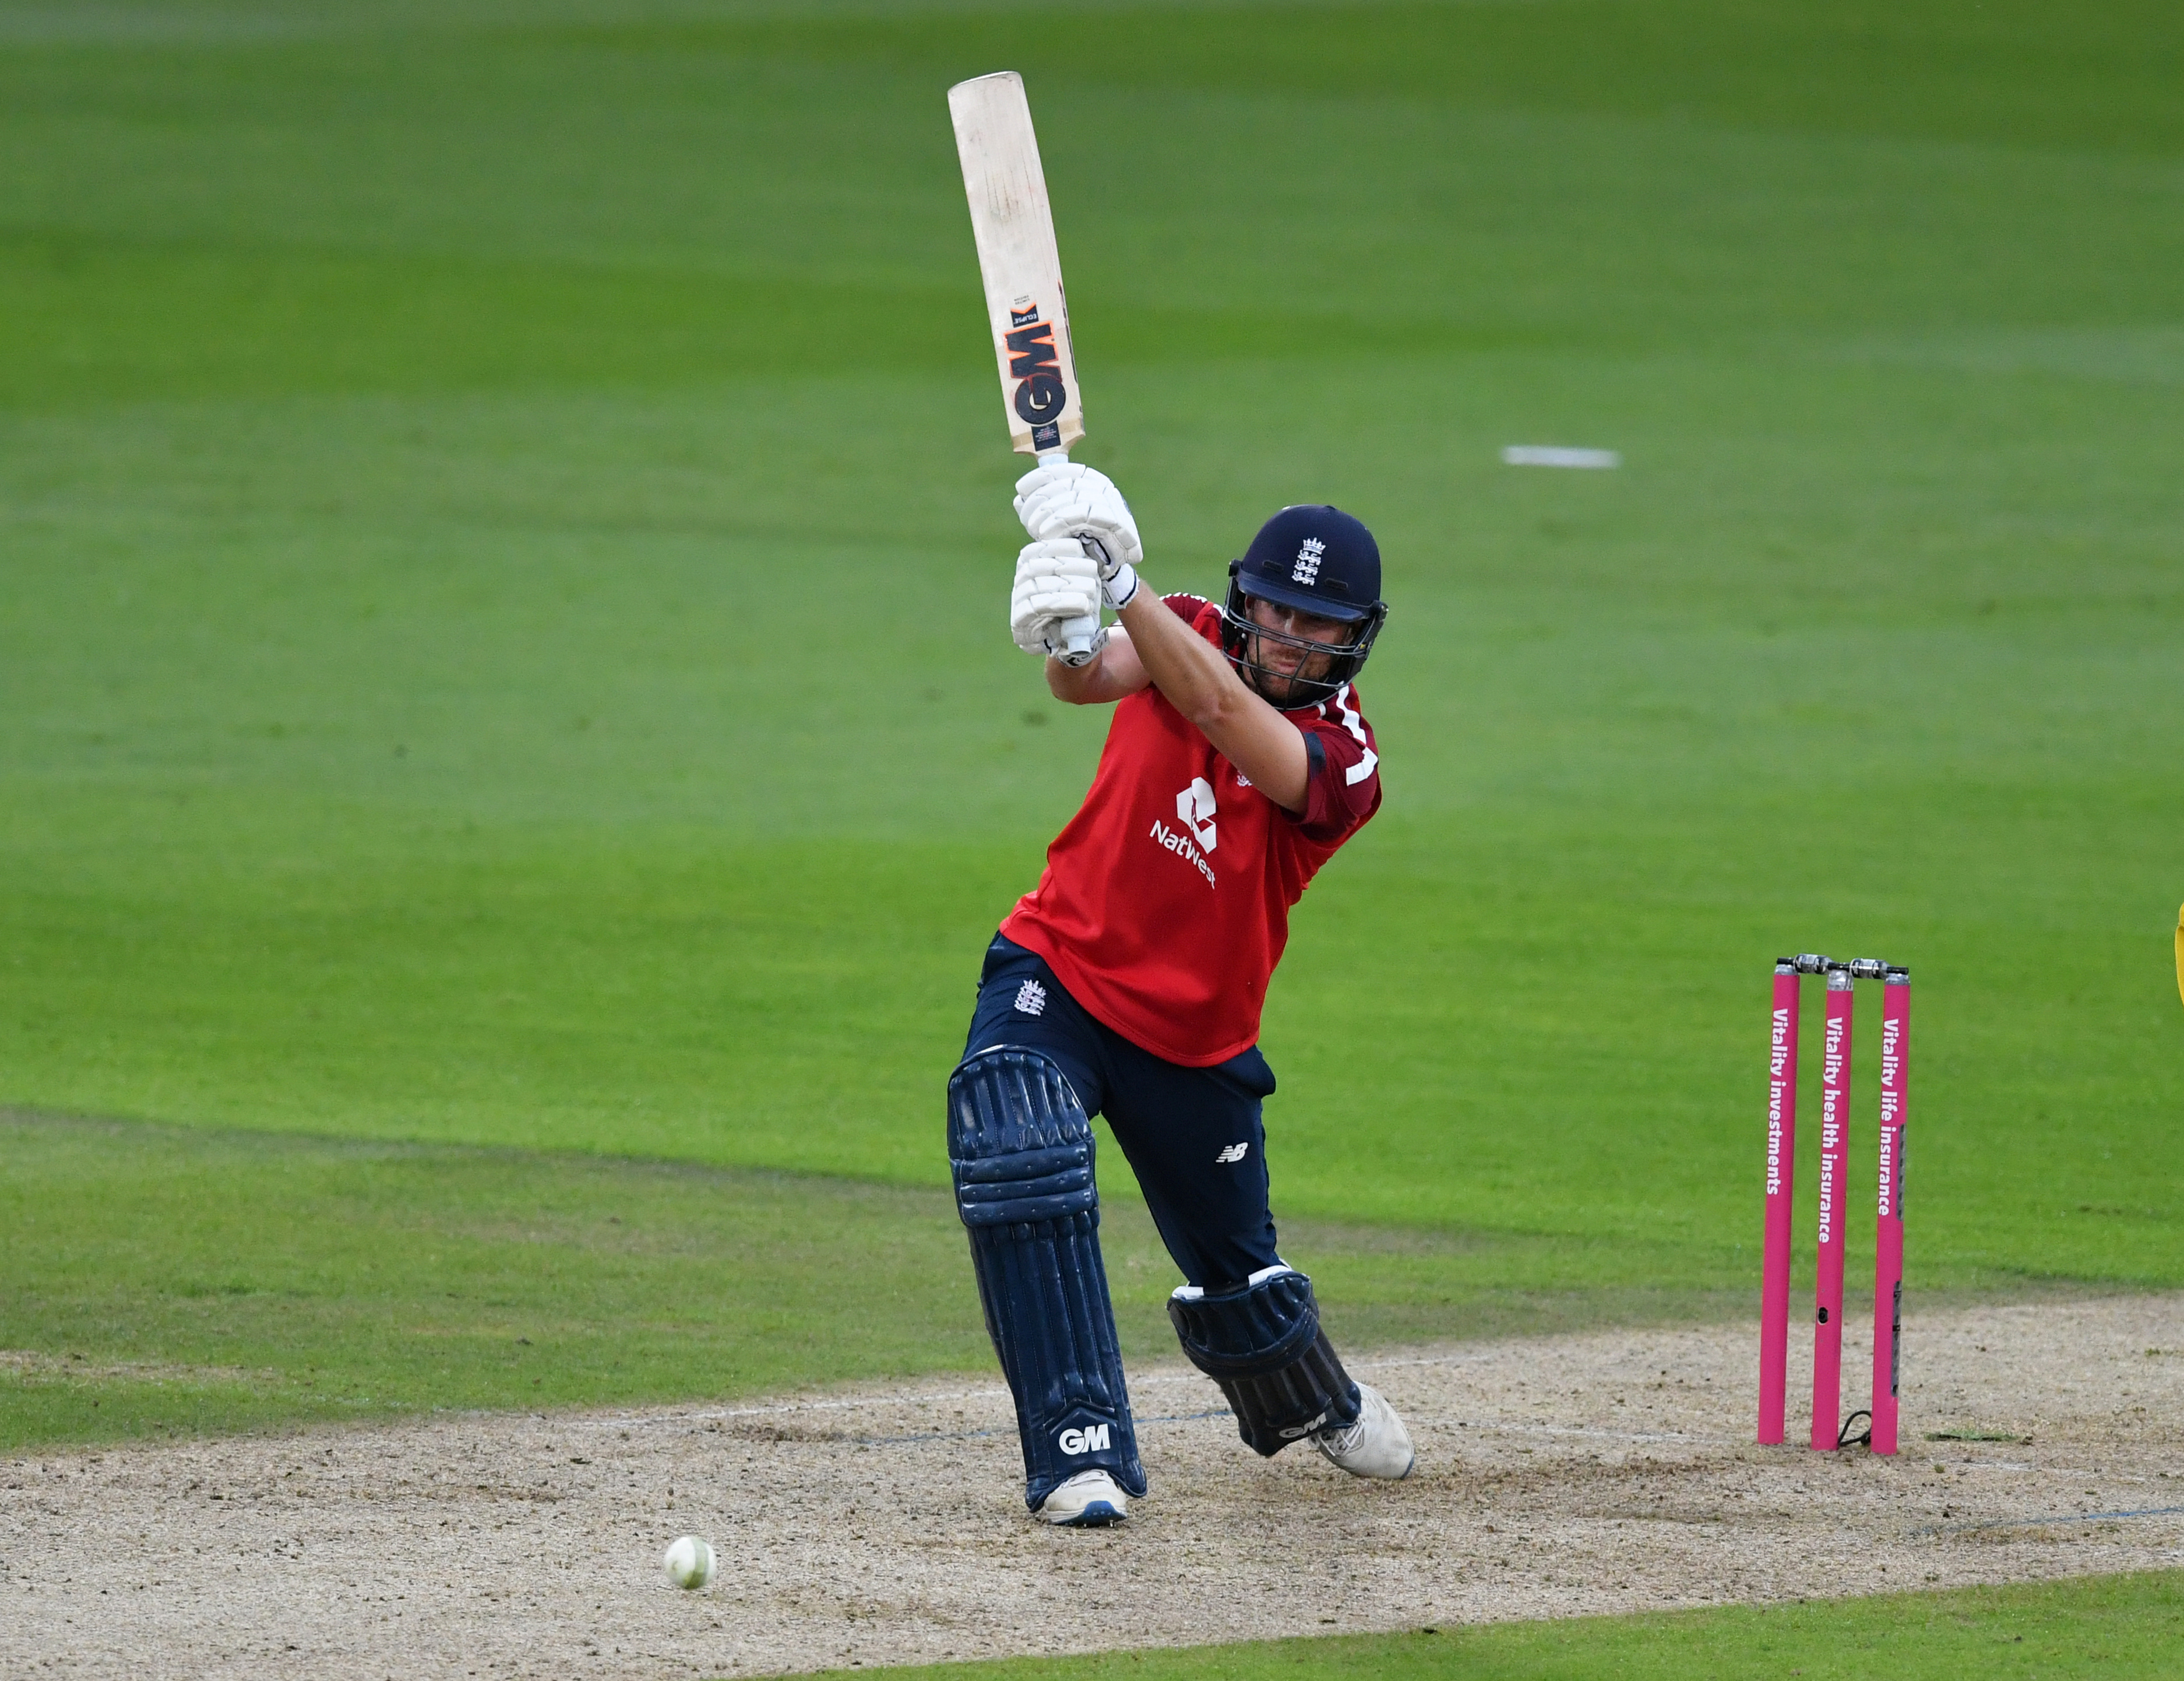 England's Dawid Malan in action. Photo: Reuters